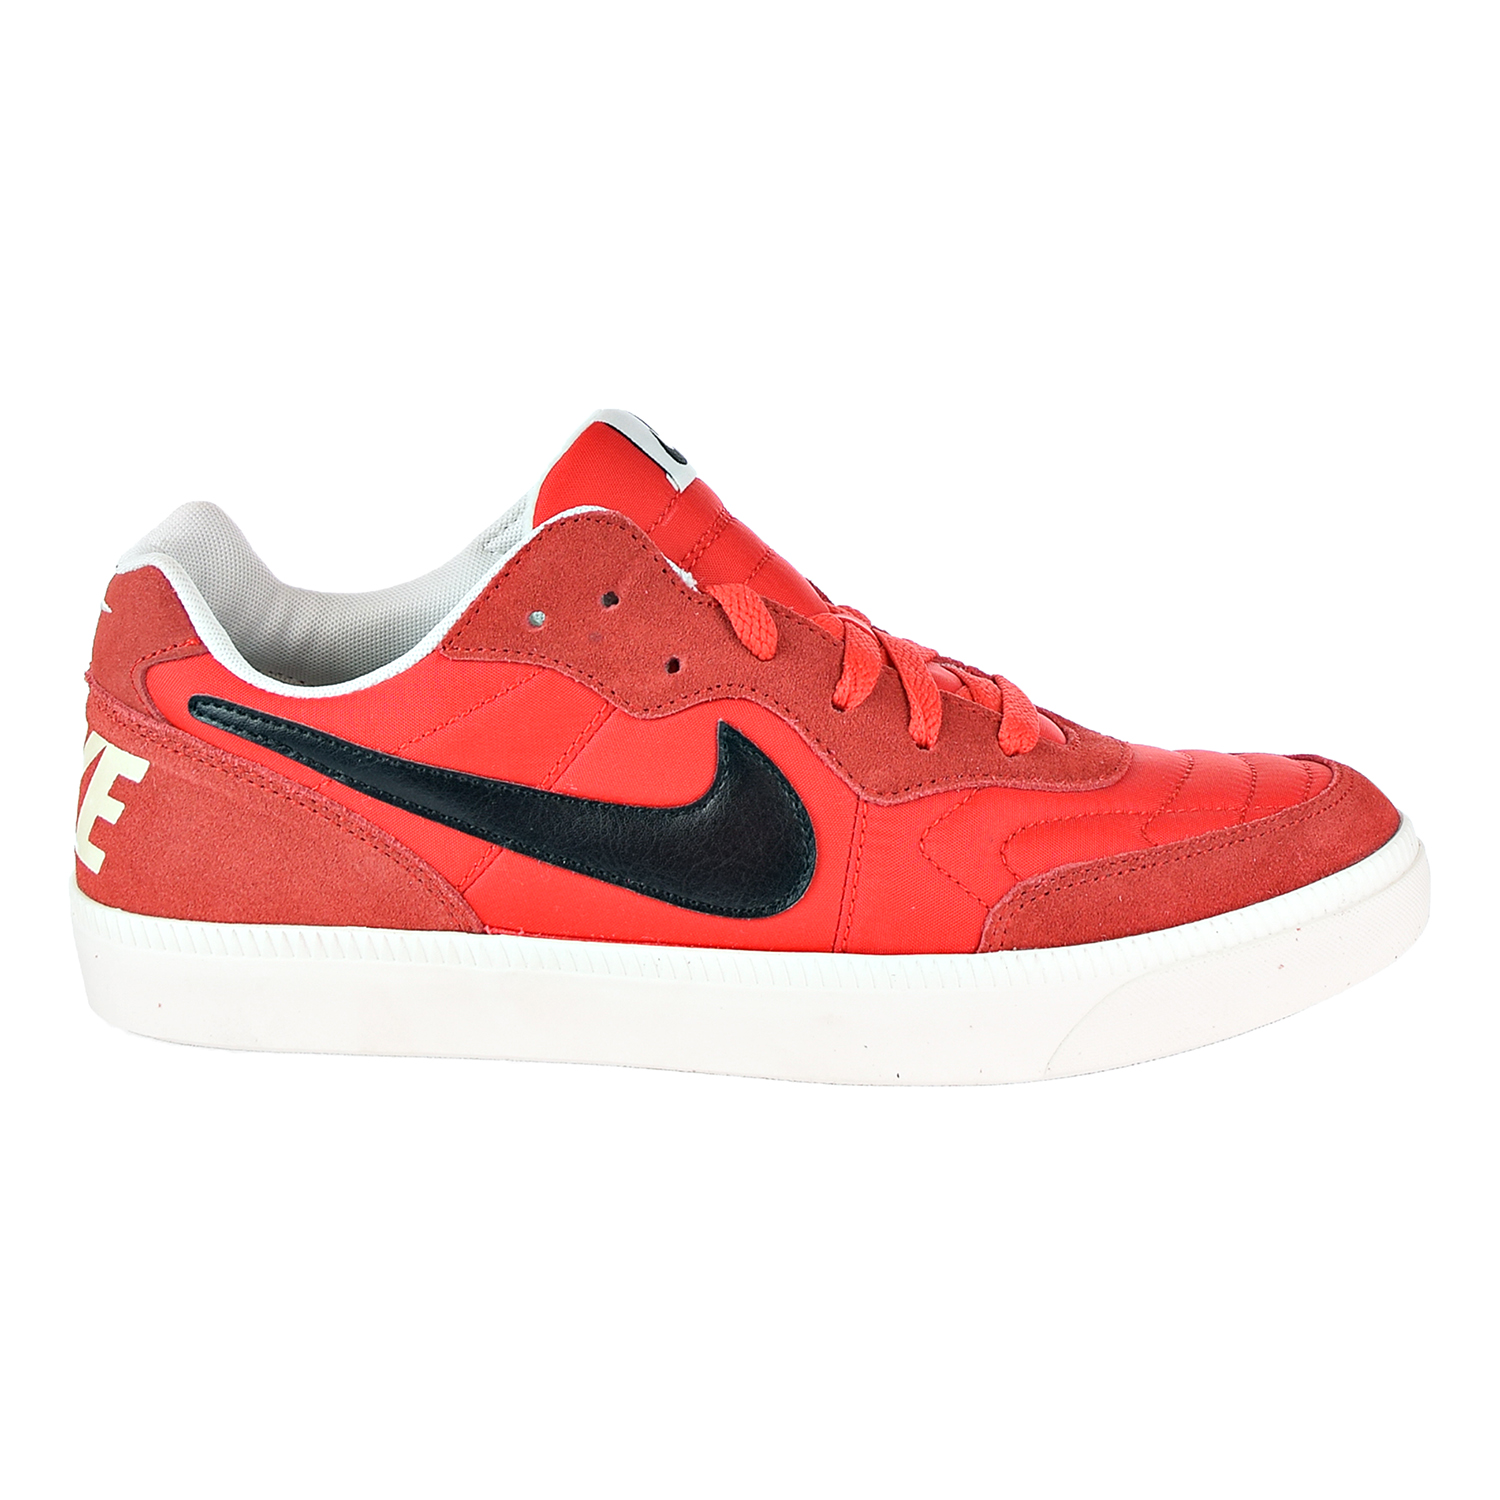 Nike NSW Tiempo Trainer Men's Shoes Challenge Red 644843-662